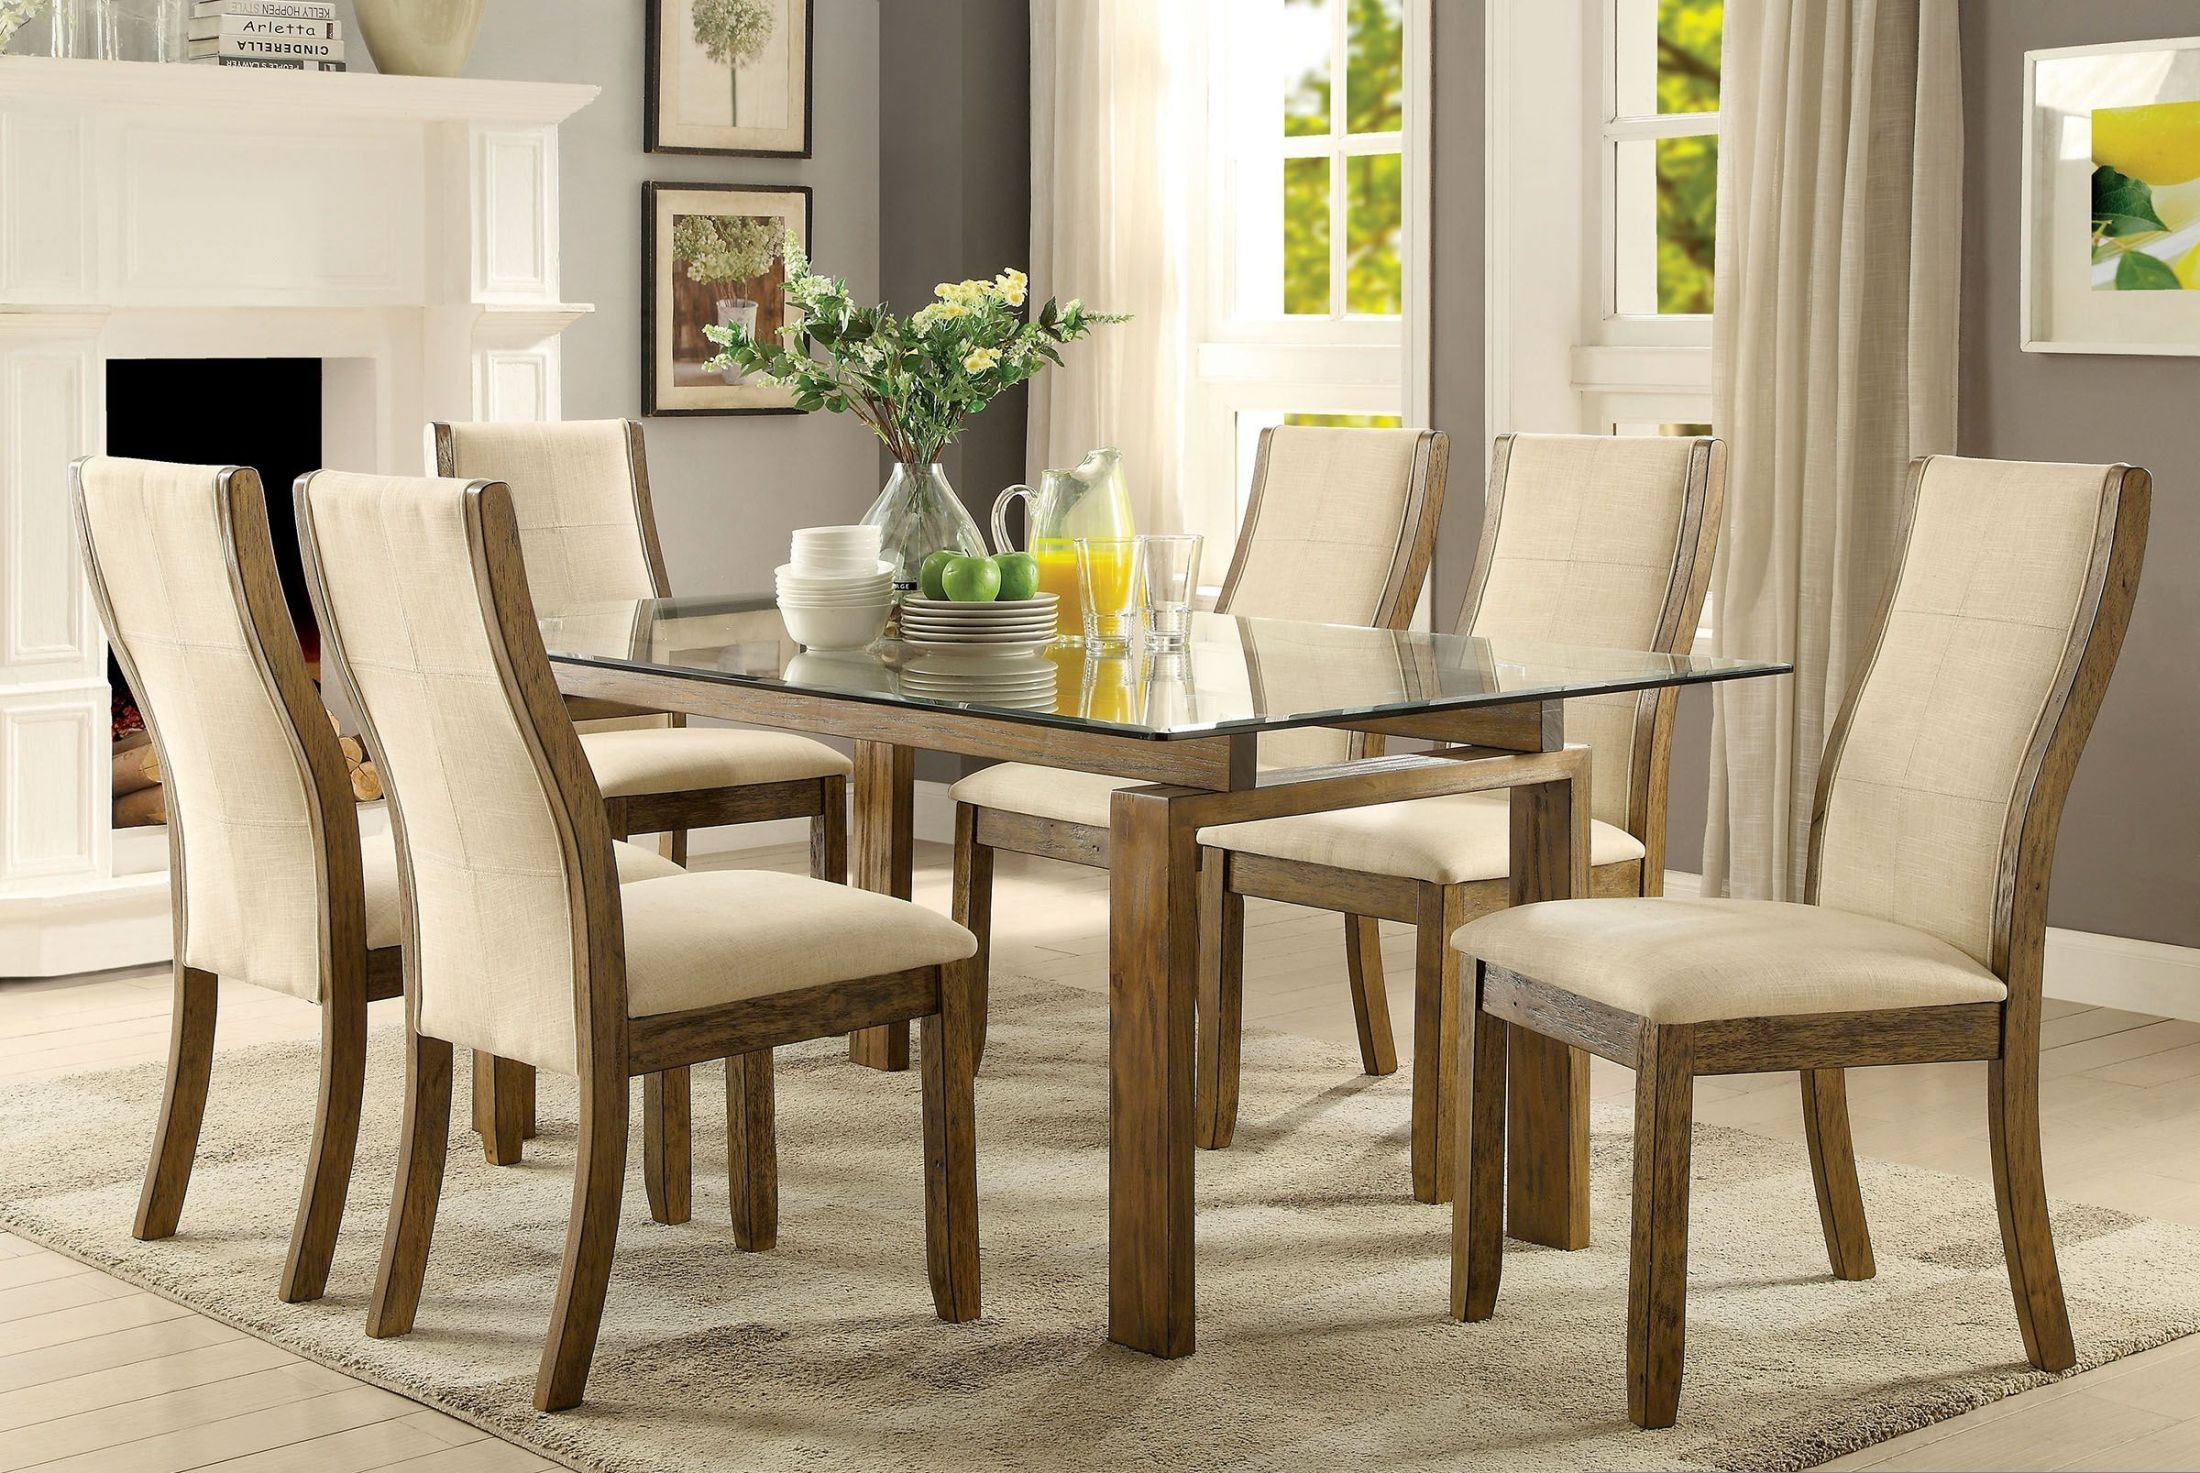 Onway oak rectangular glass top dining room set cm3461t for Glass dining room sets